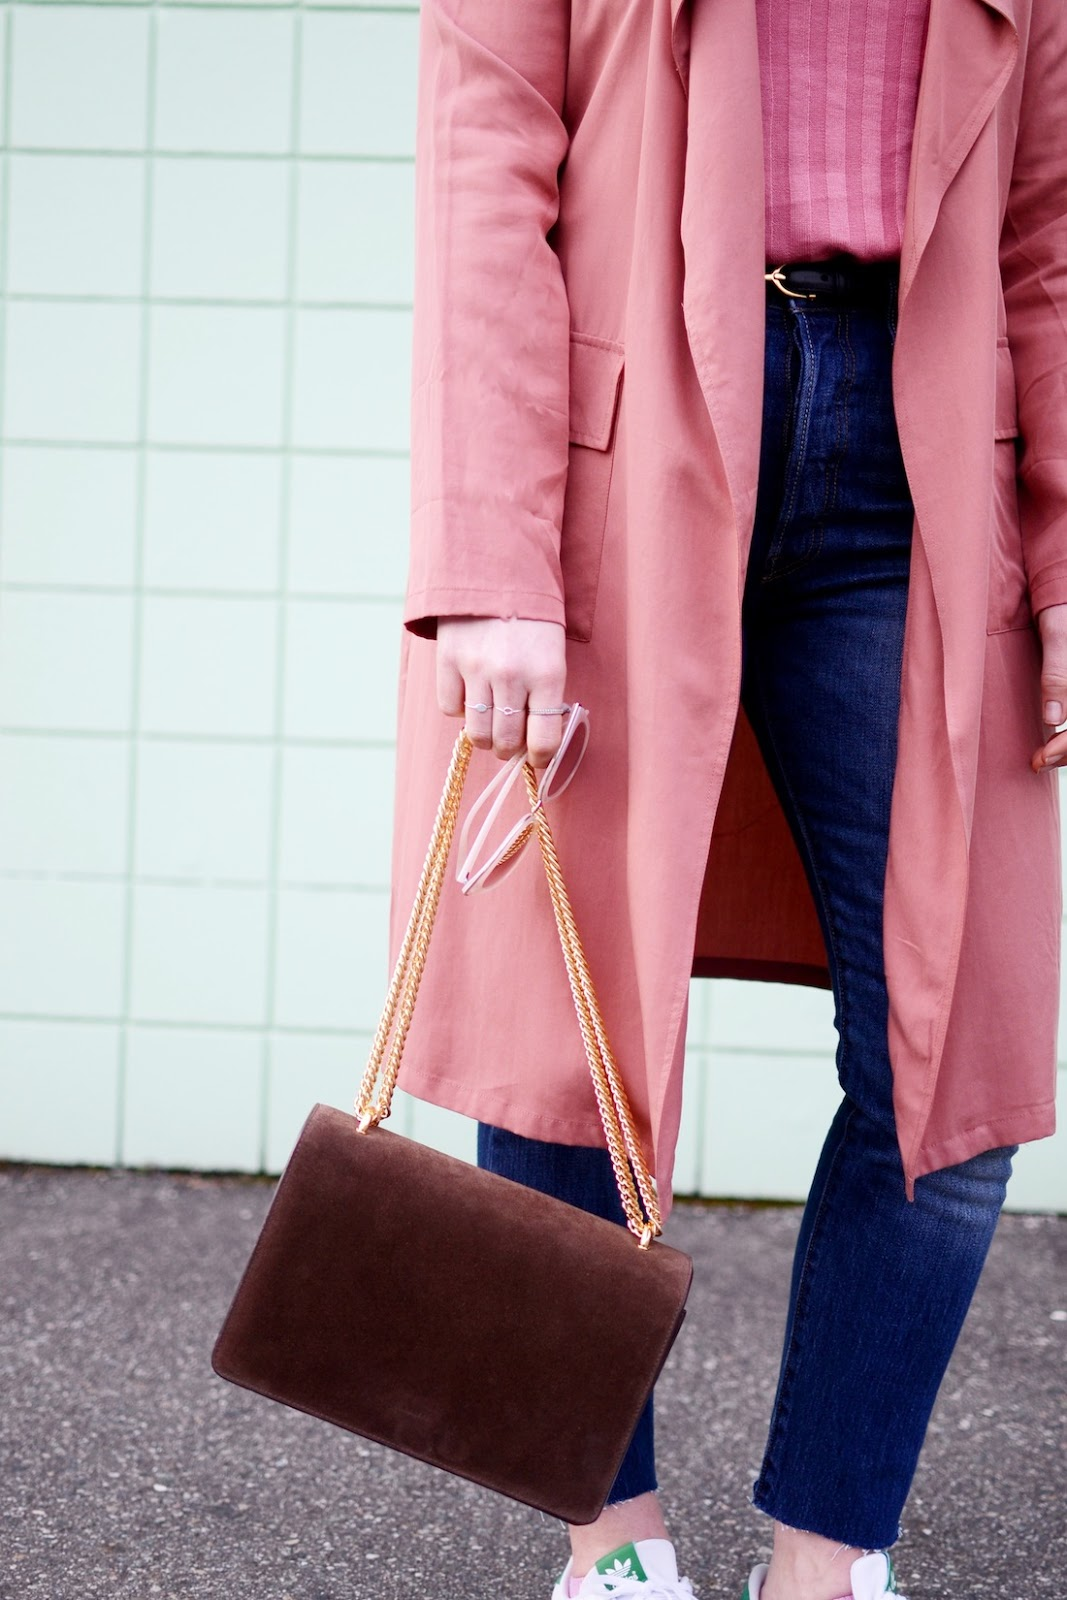 Rose duster jacket forever 21 outfit vancouver fashion blogger AGNEEL sophie bag brown suede miss stan smith